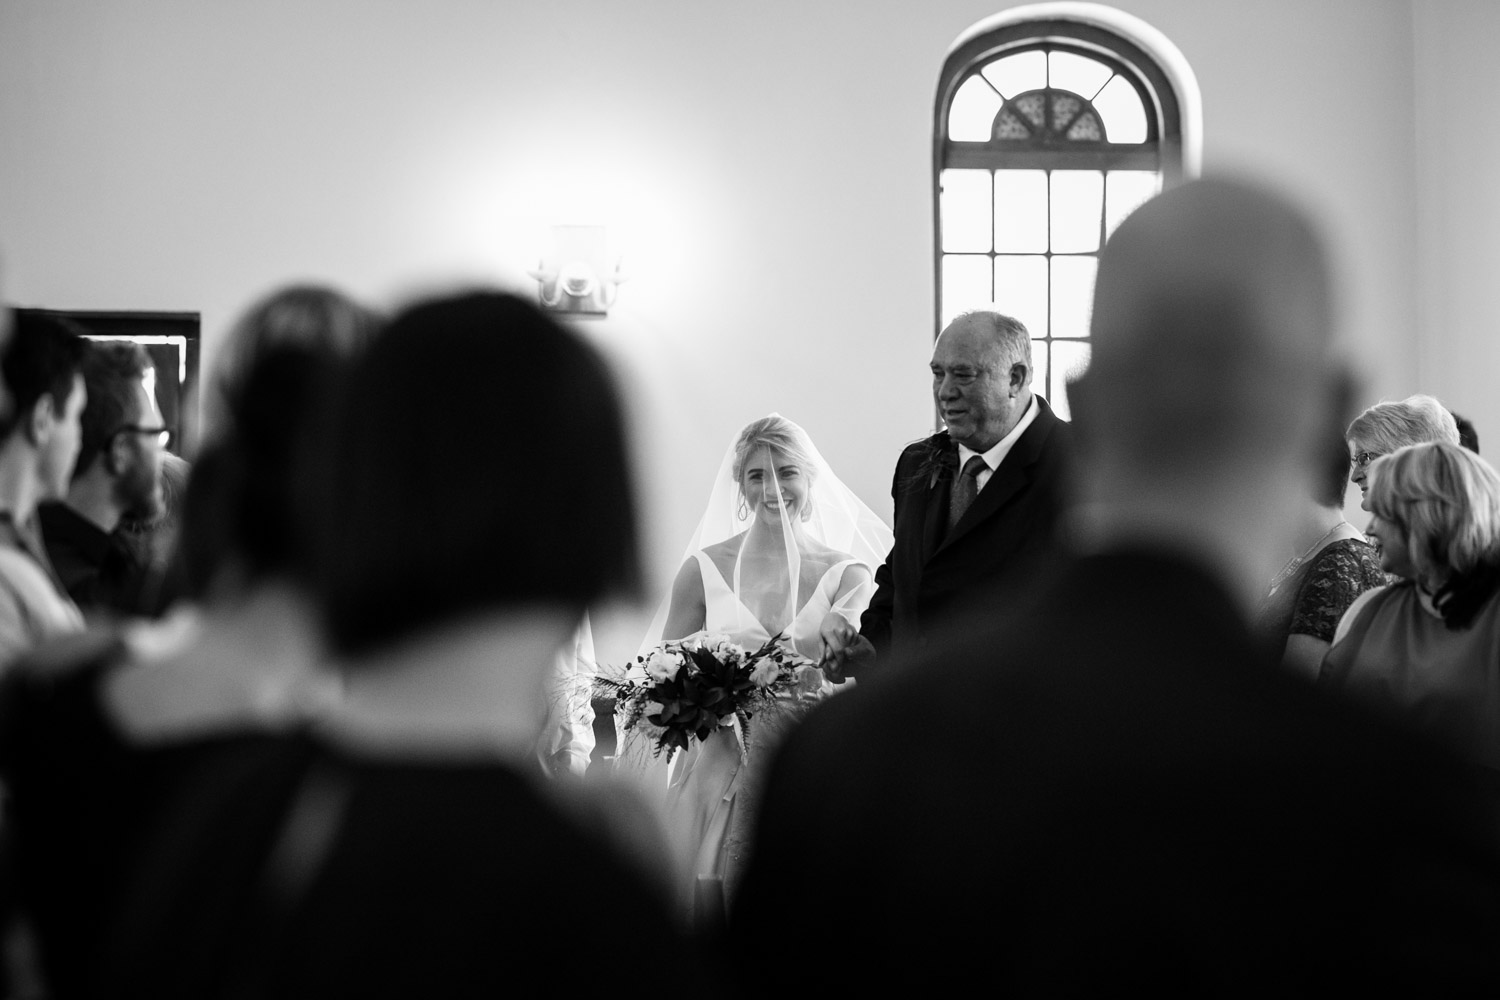 Classic Simple Bride Walking Down Aisle With Father